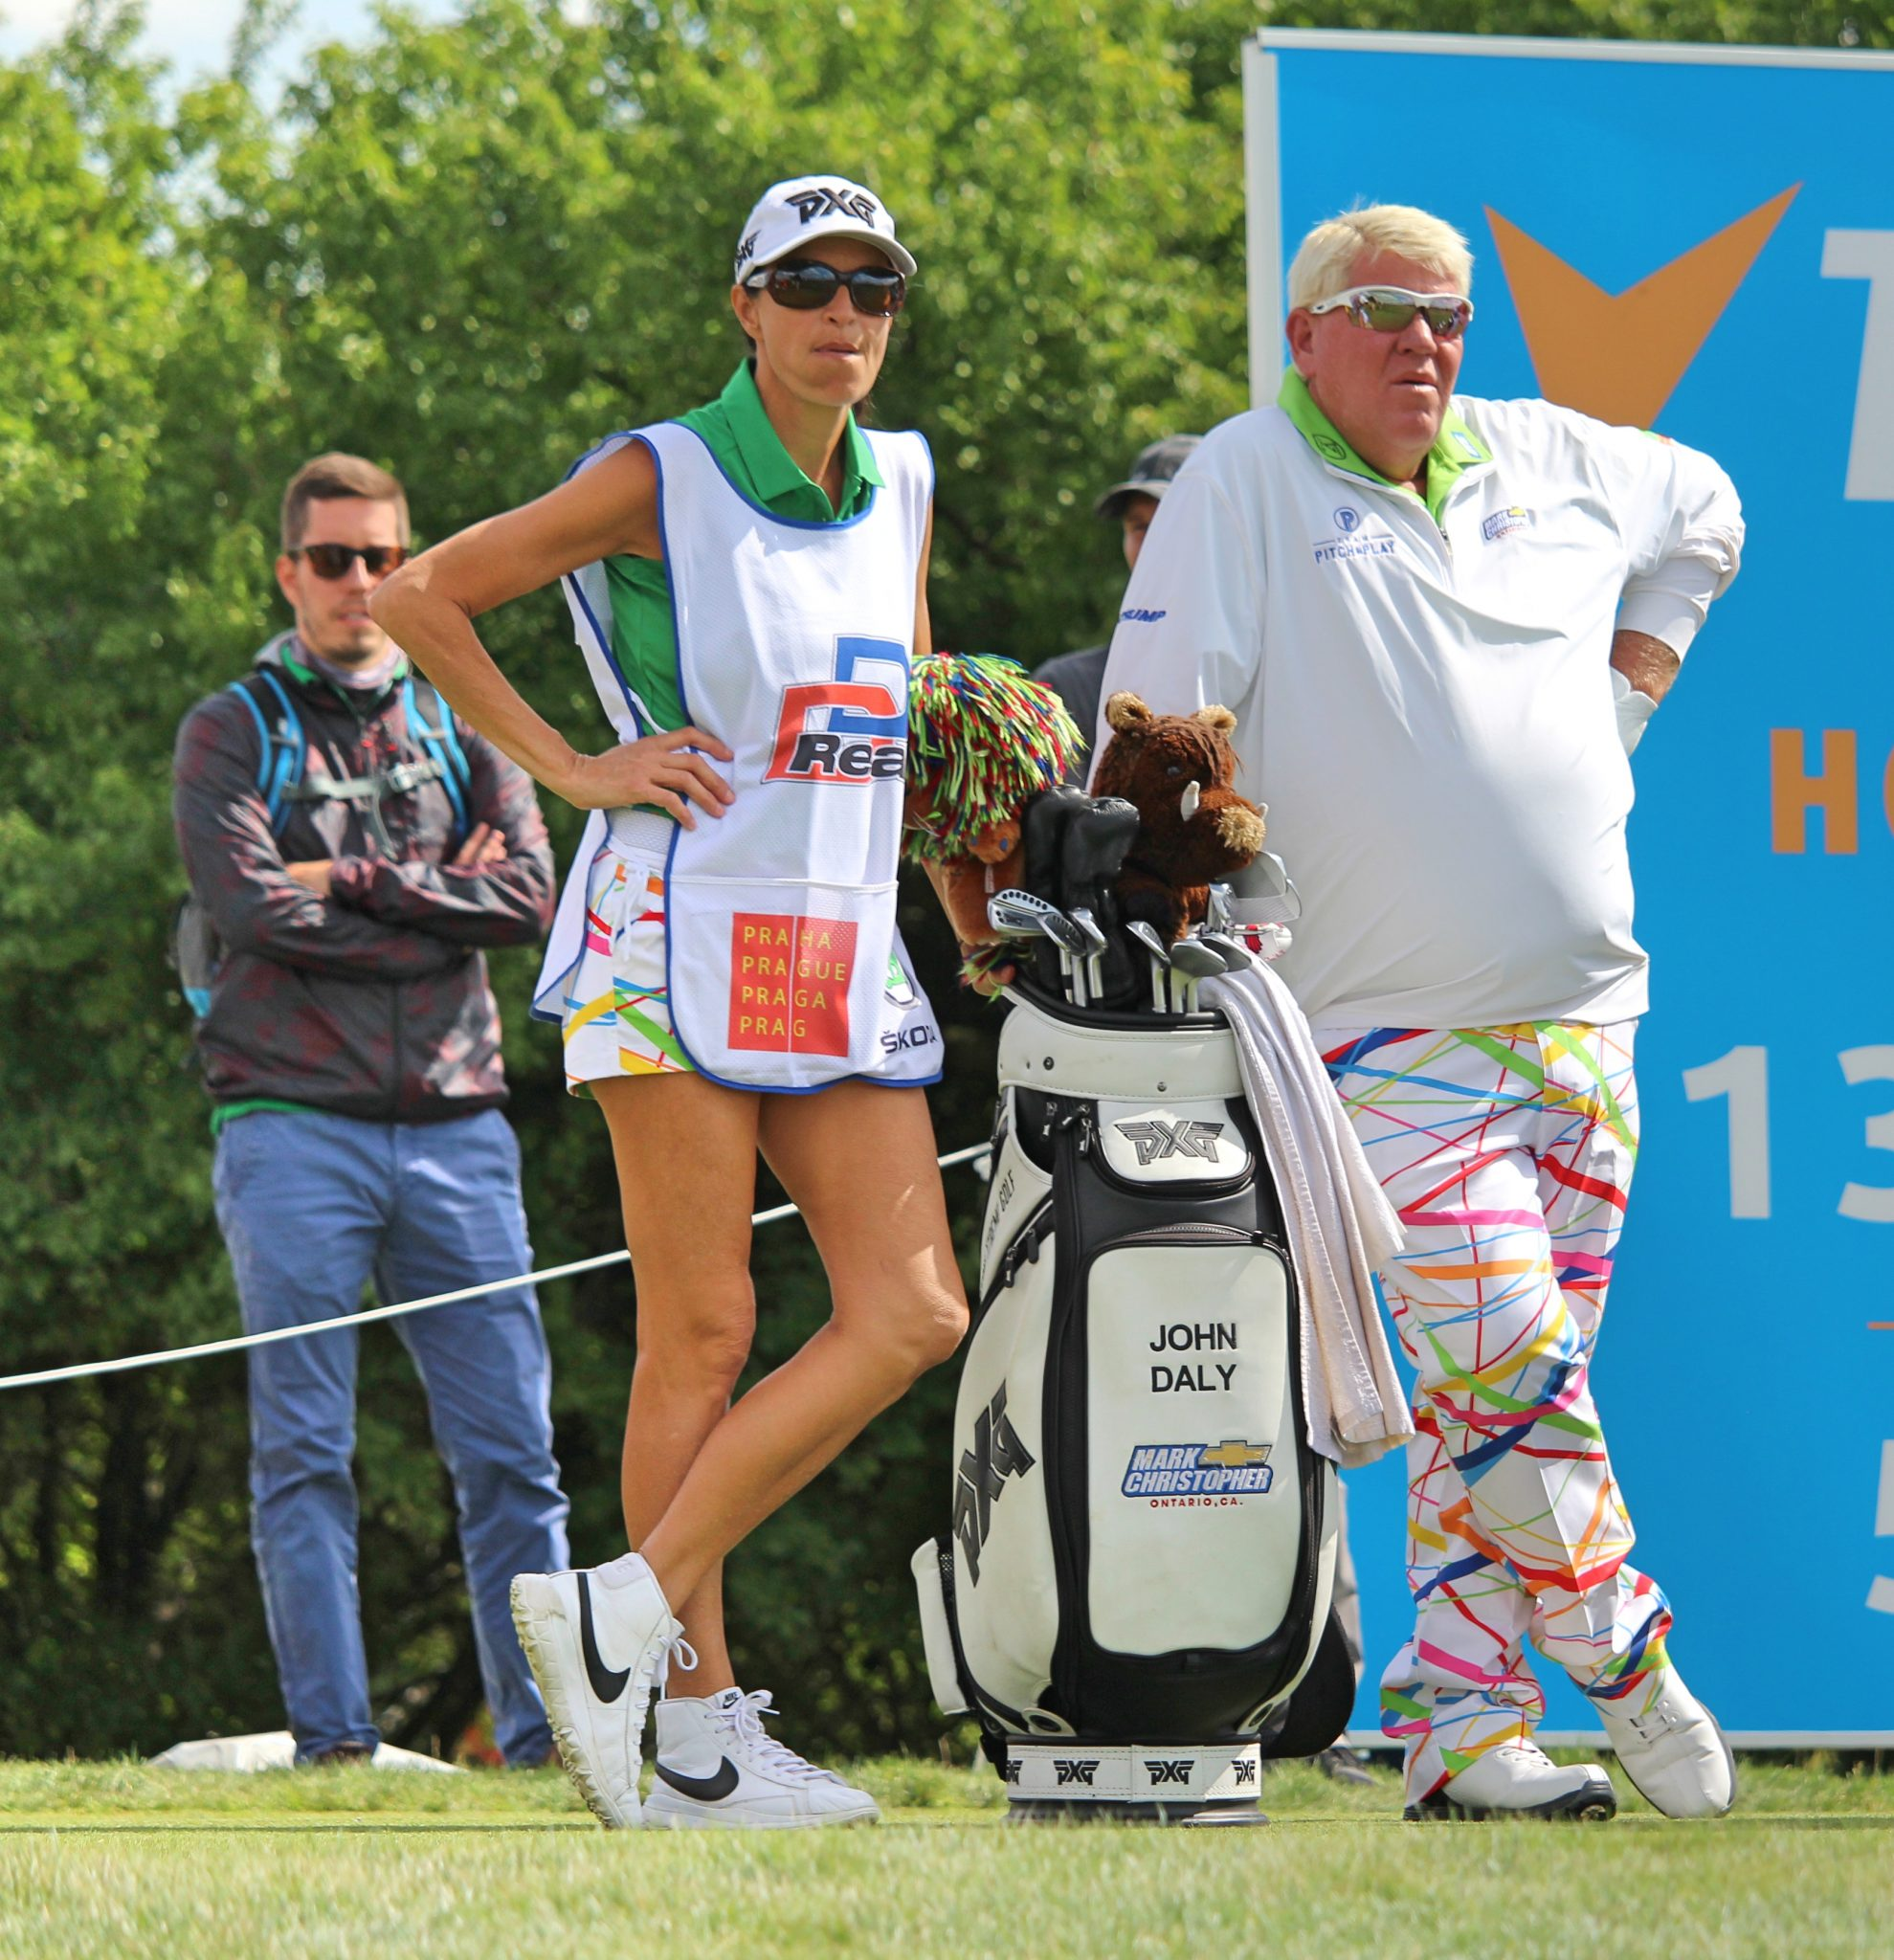 John Daly with his caddie on the 13th tee